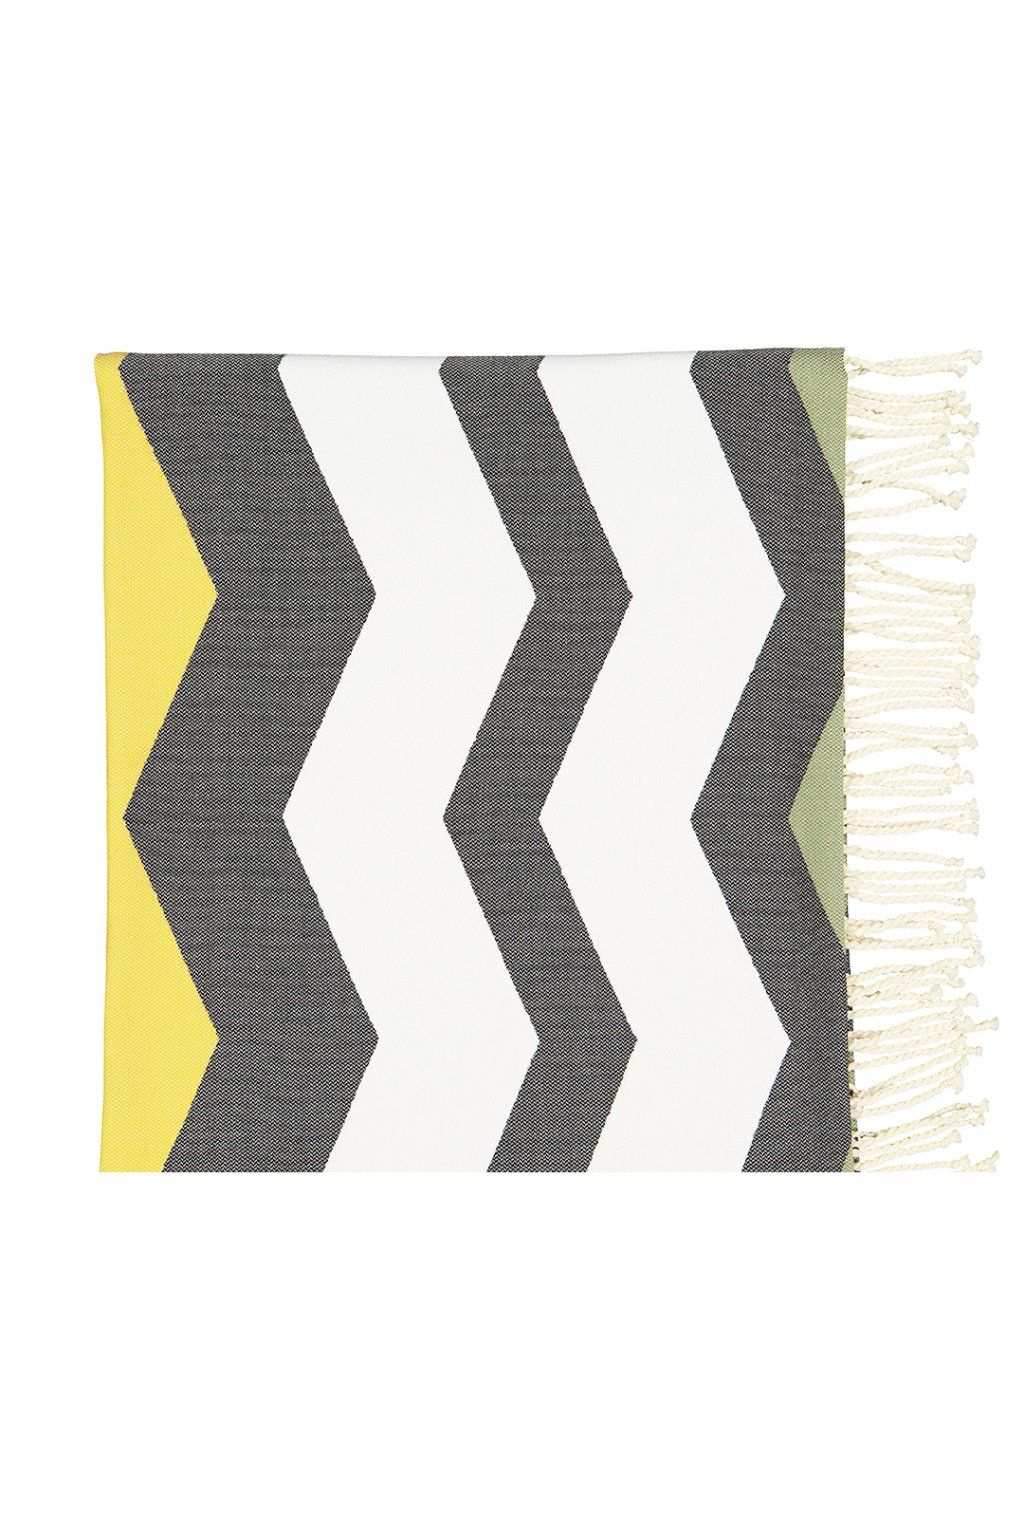 Futah Beach Towel odeceixe black & mustard Folded